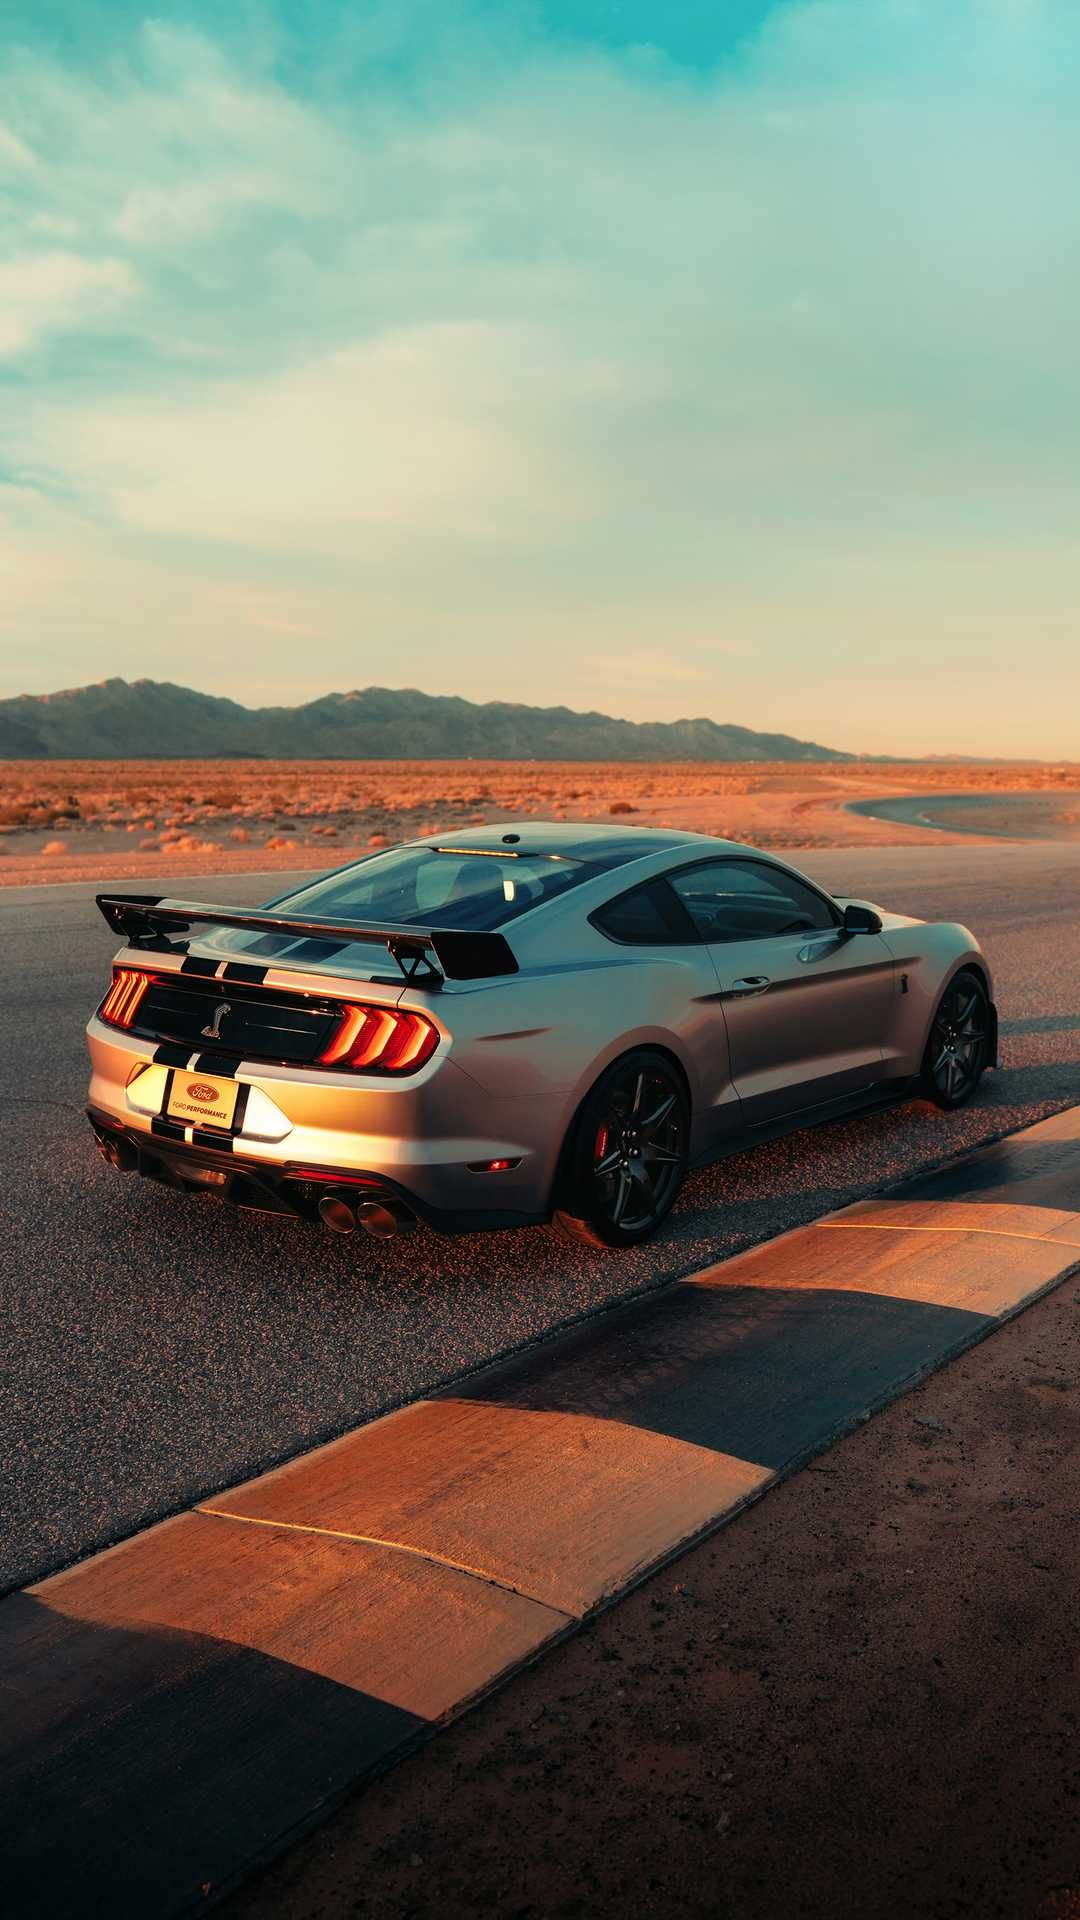 New 2020 Ford Mustang Shelby Gt500 Silver Side Carros De Luxo